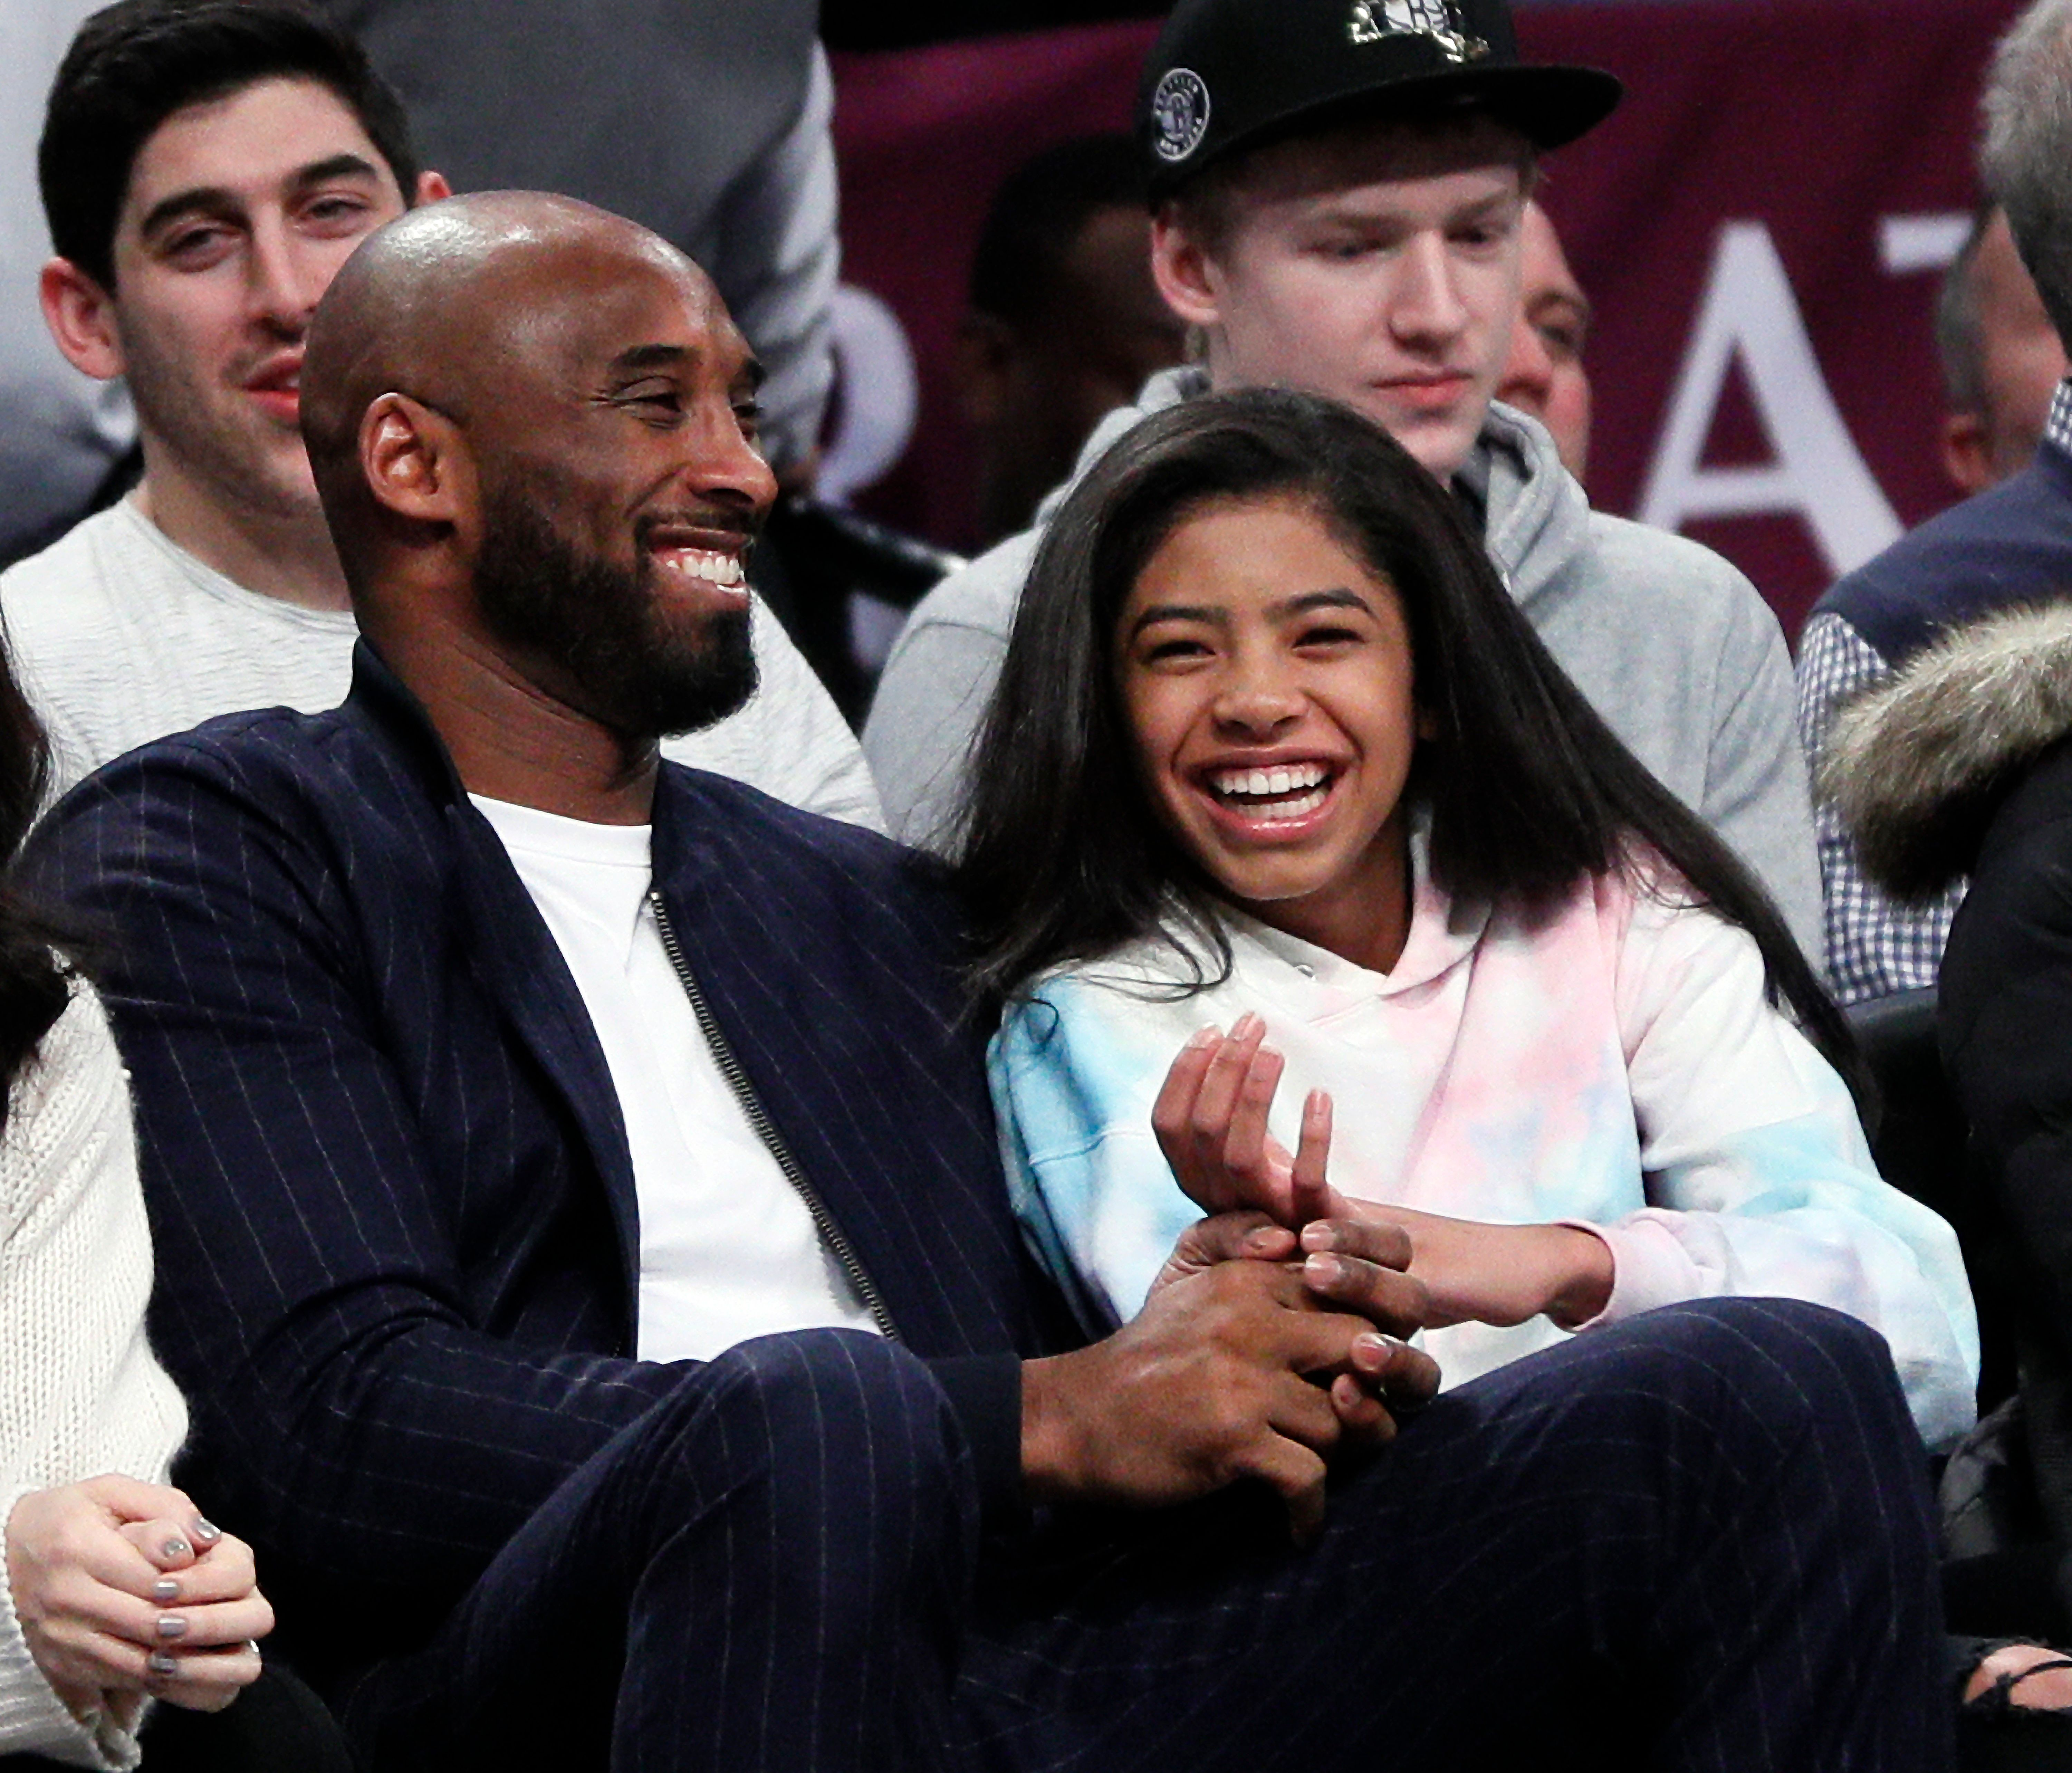 Kobe Bryant and his daughter Gigi, at an NBA basketball game between the Brooklyn Nets and Atlanta Hawks on December 21, 2019 | Photo: Getty Images